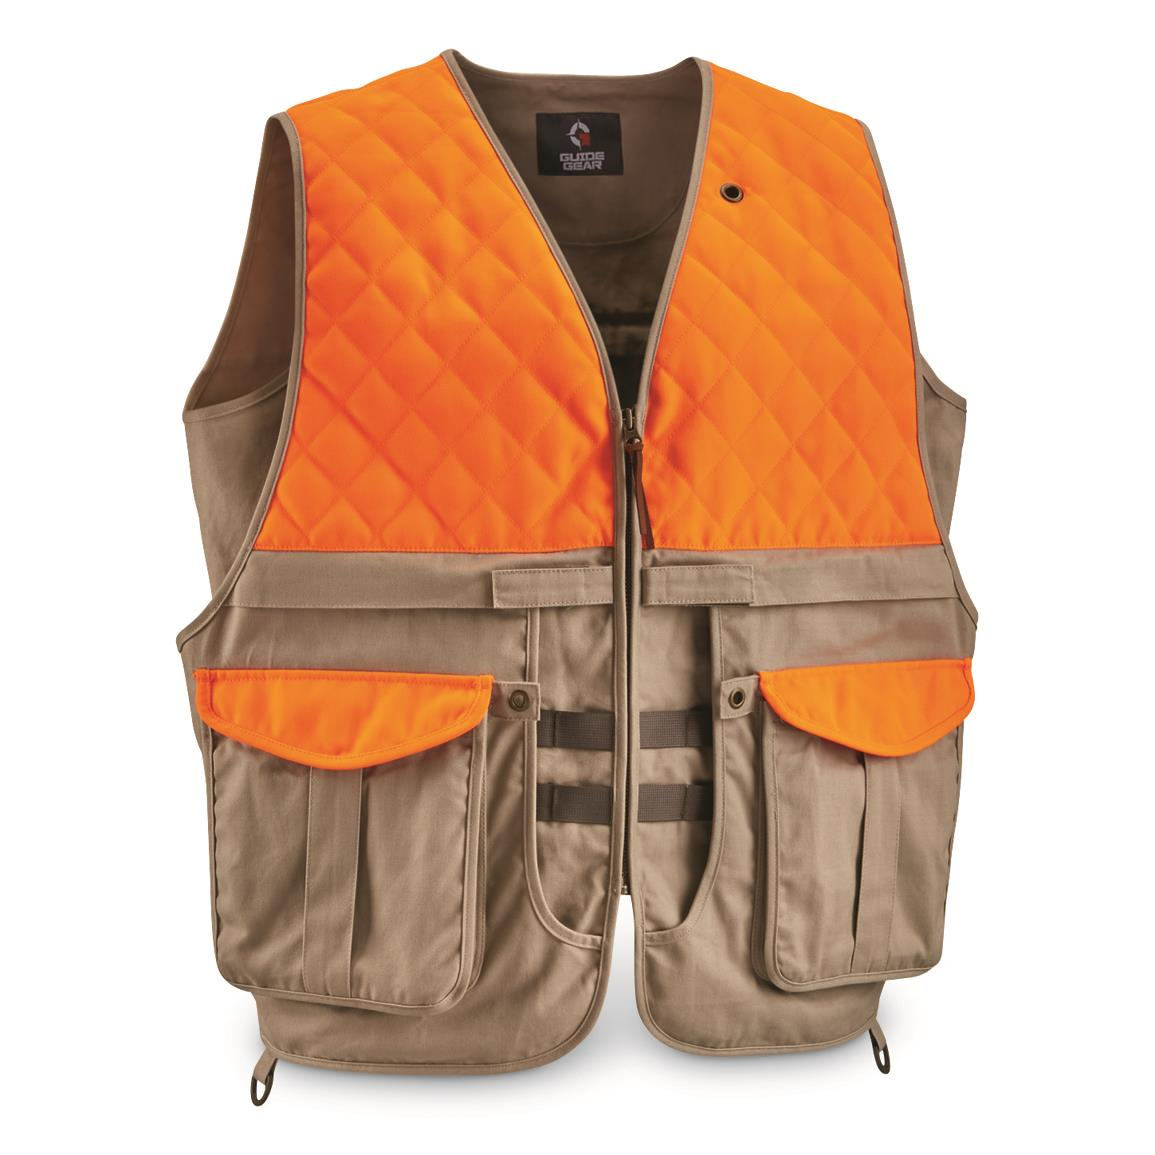 Guide Gear Men's Upland Vest, Khaki/blaze